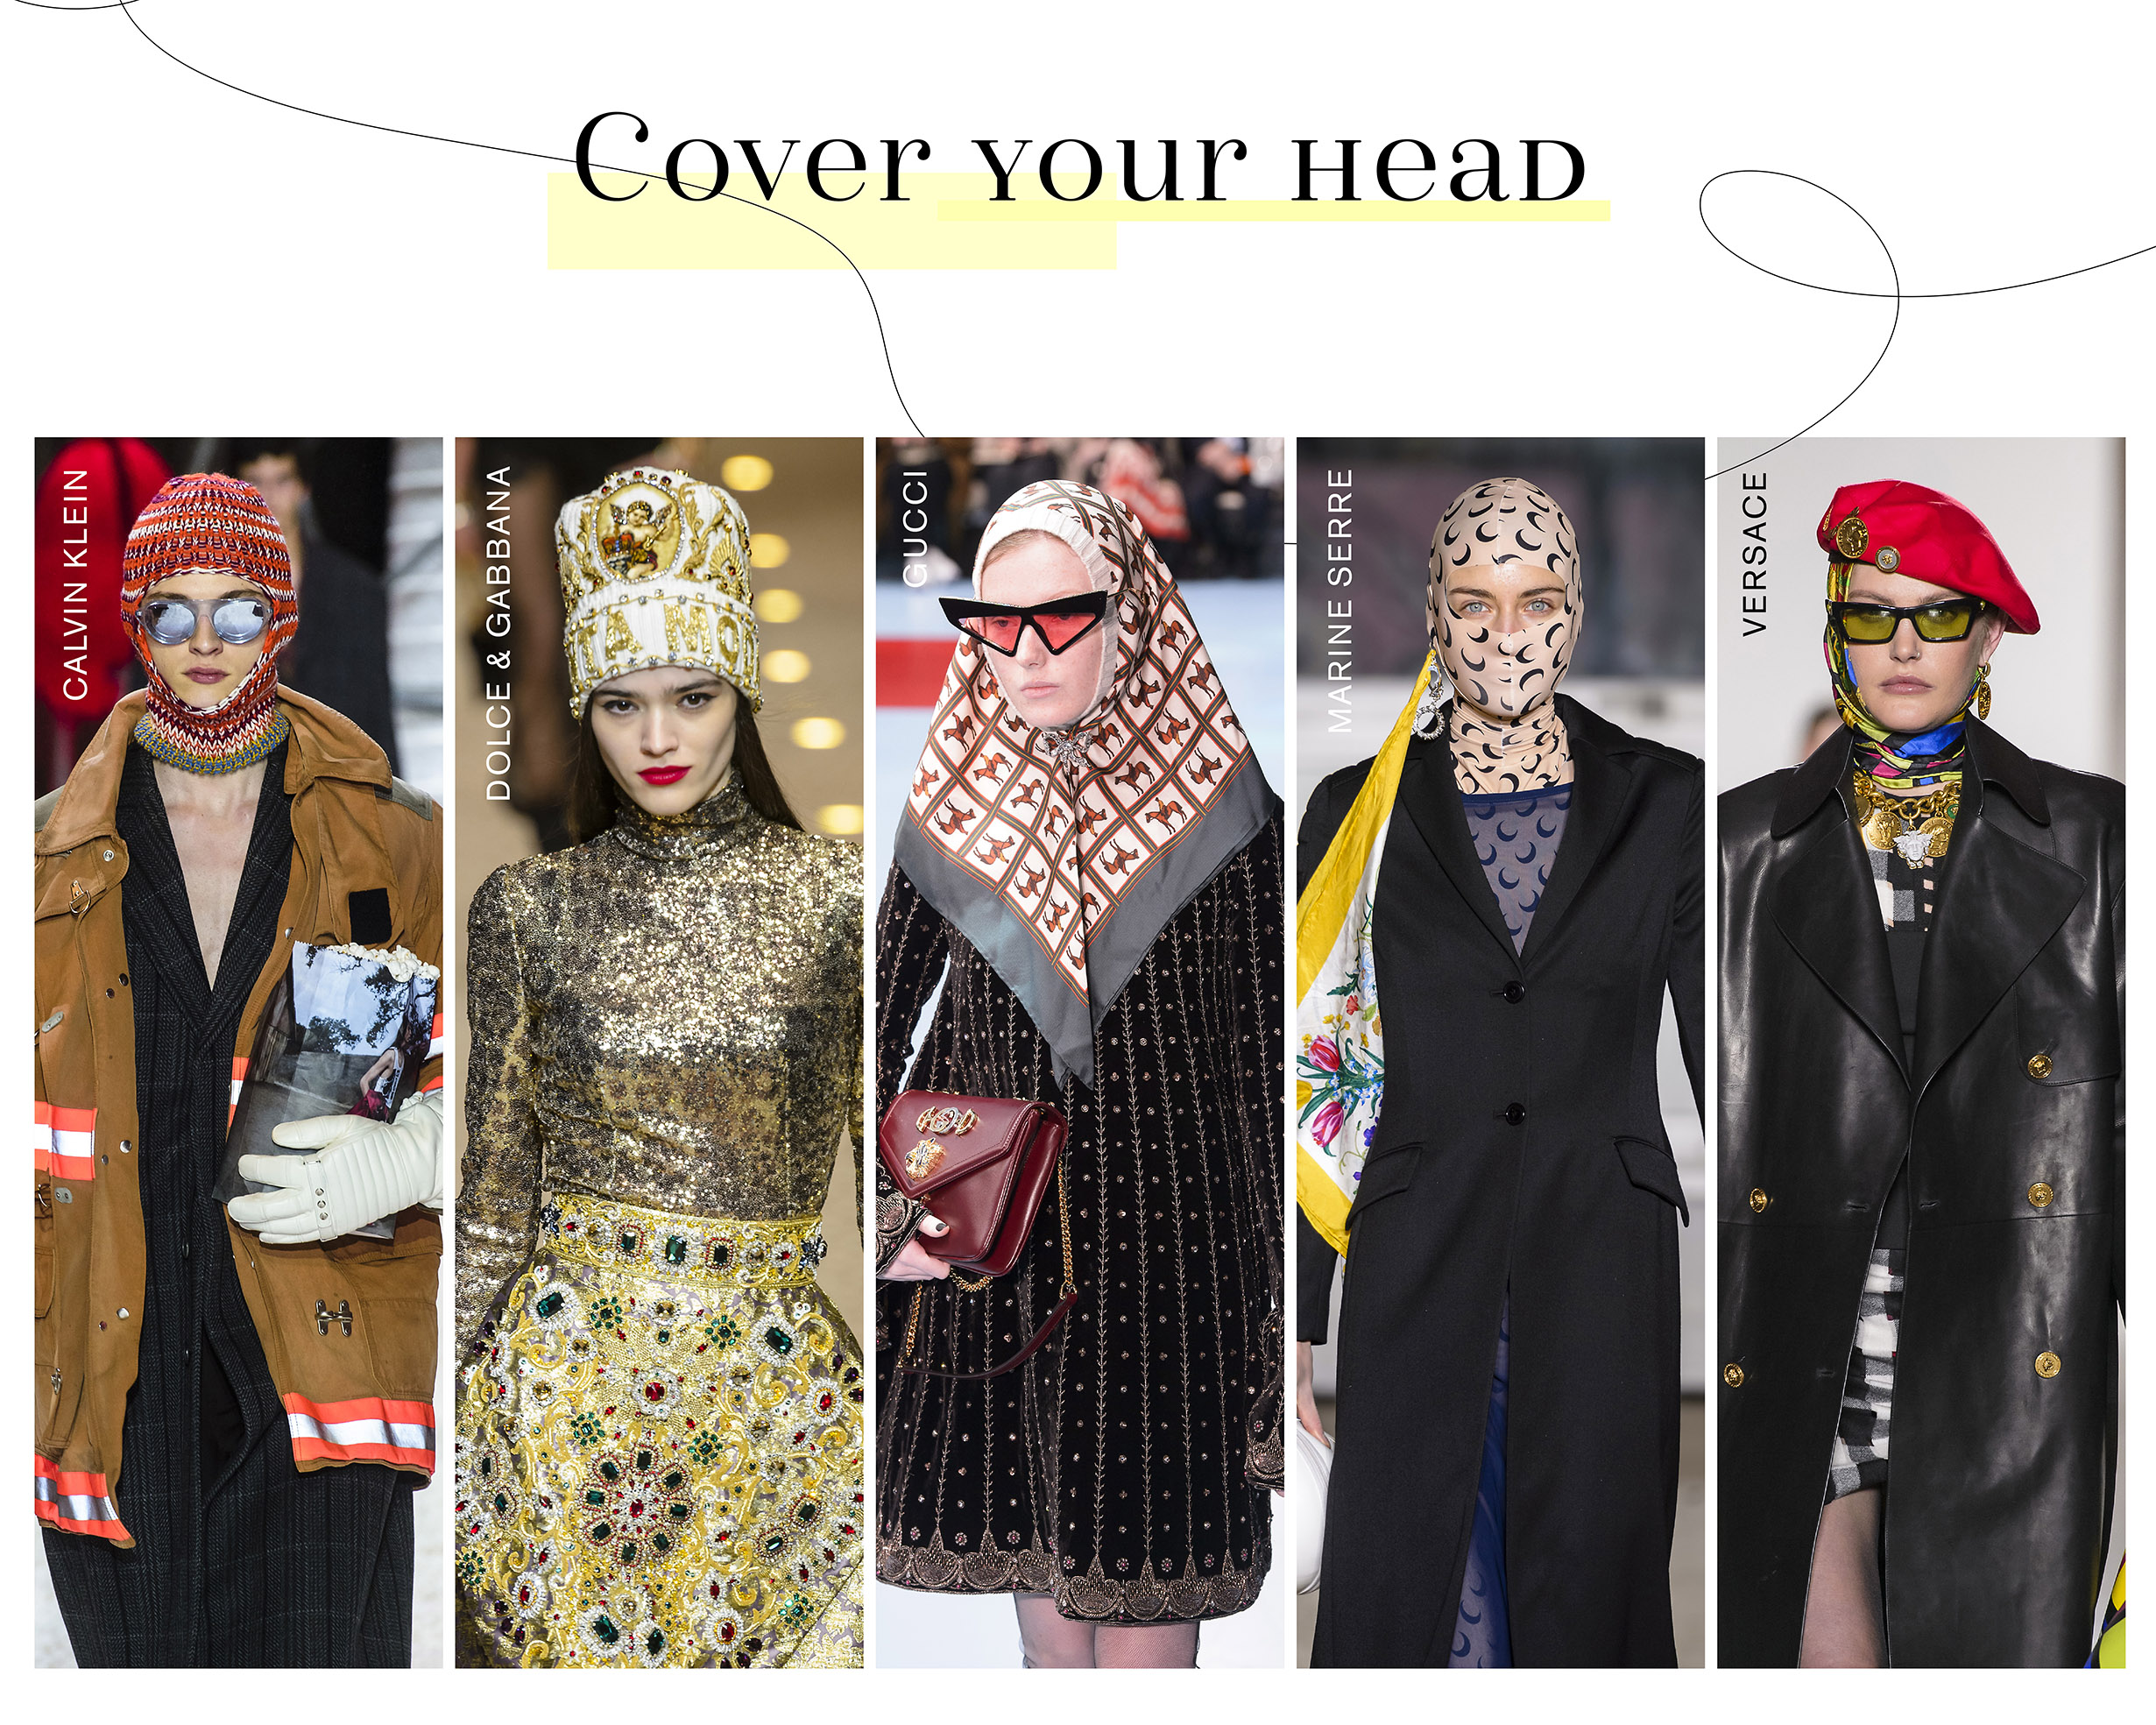 Autumn Trends 2018 - All The Key Looks To Know